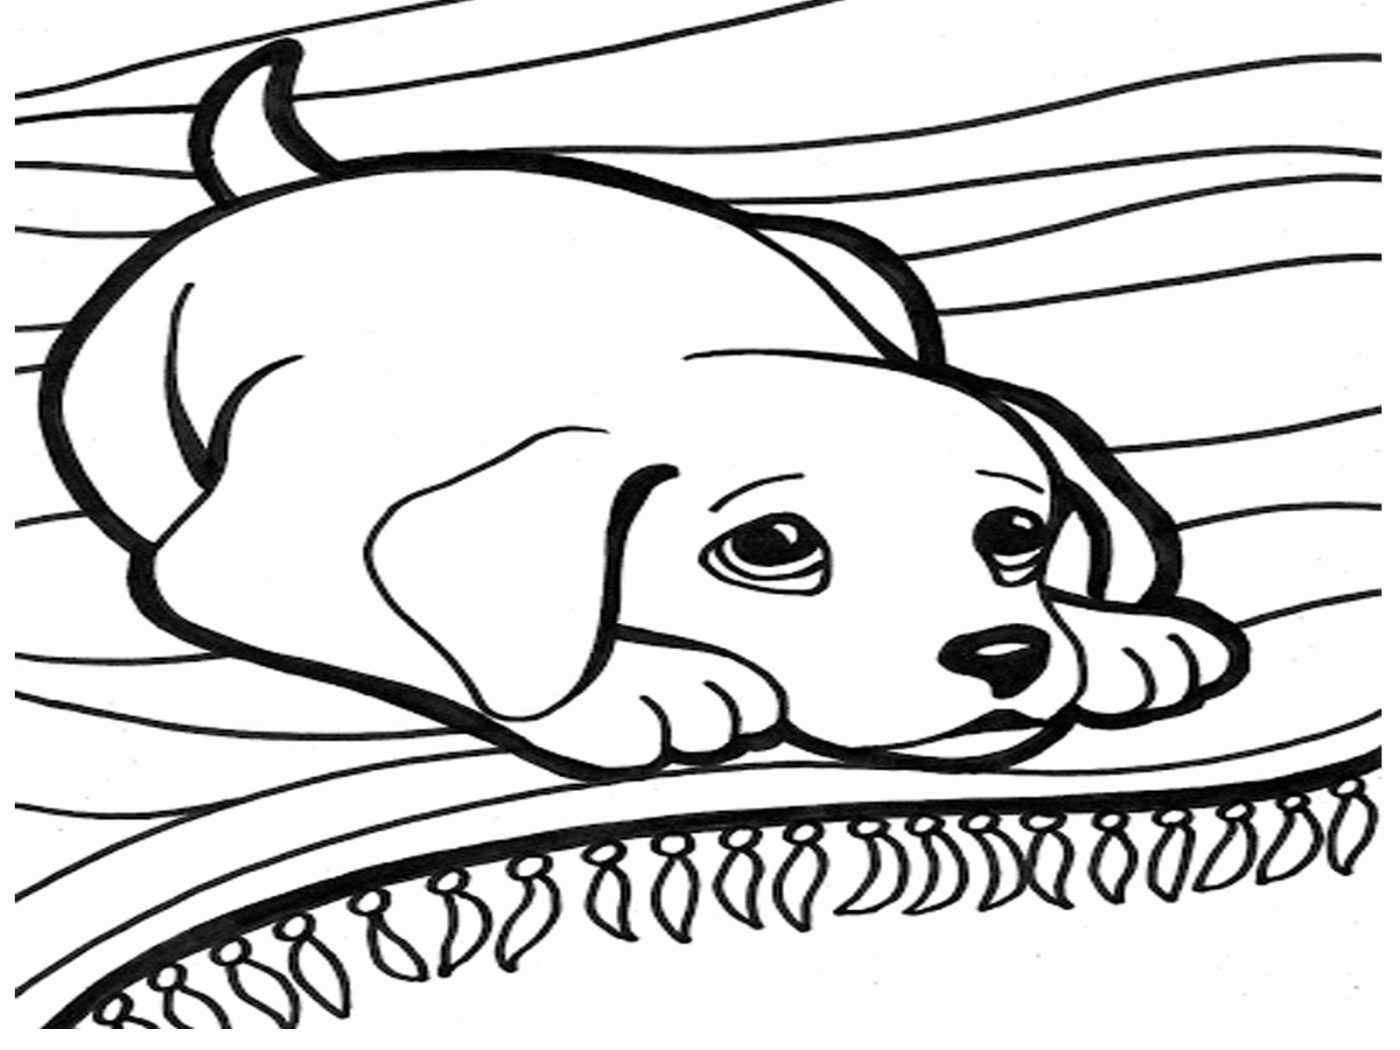 1400x1050 Printable Dog Coloring Pages Images Inspirations Dogsee Short Hair